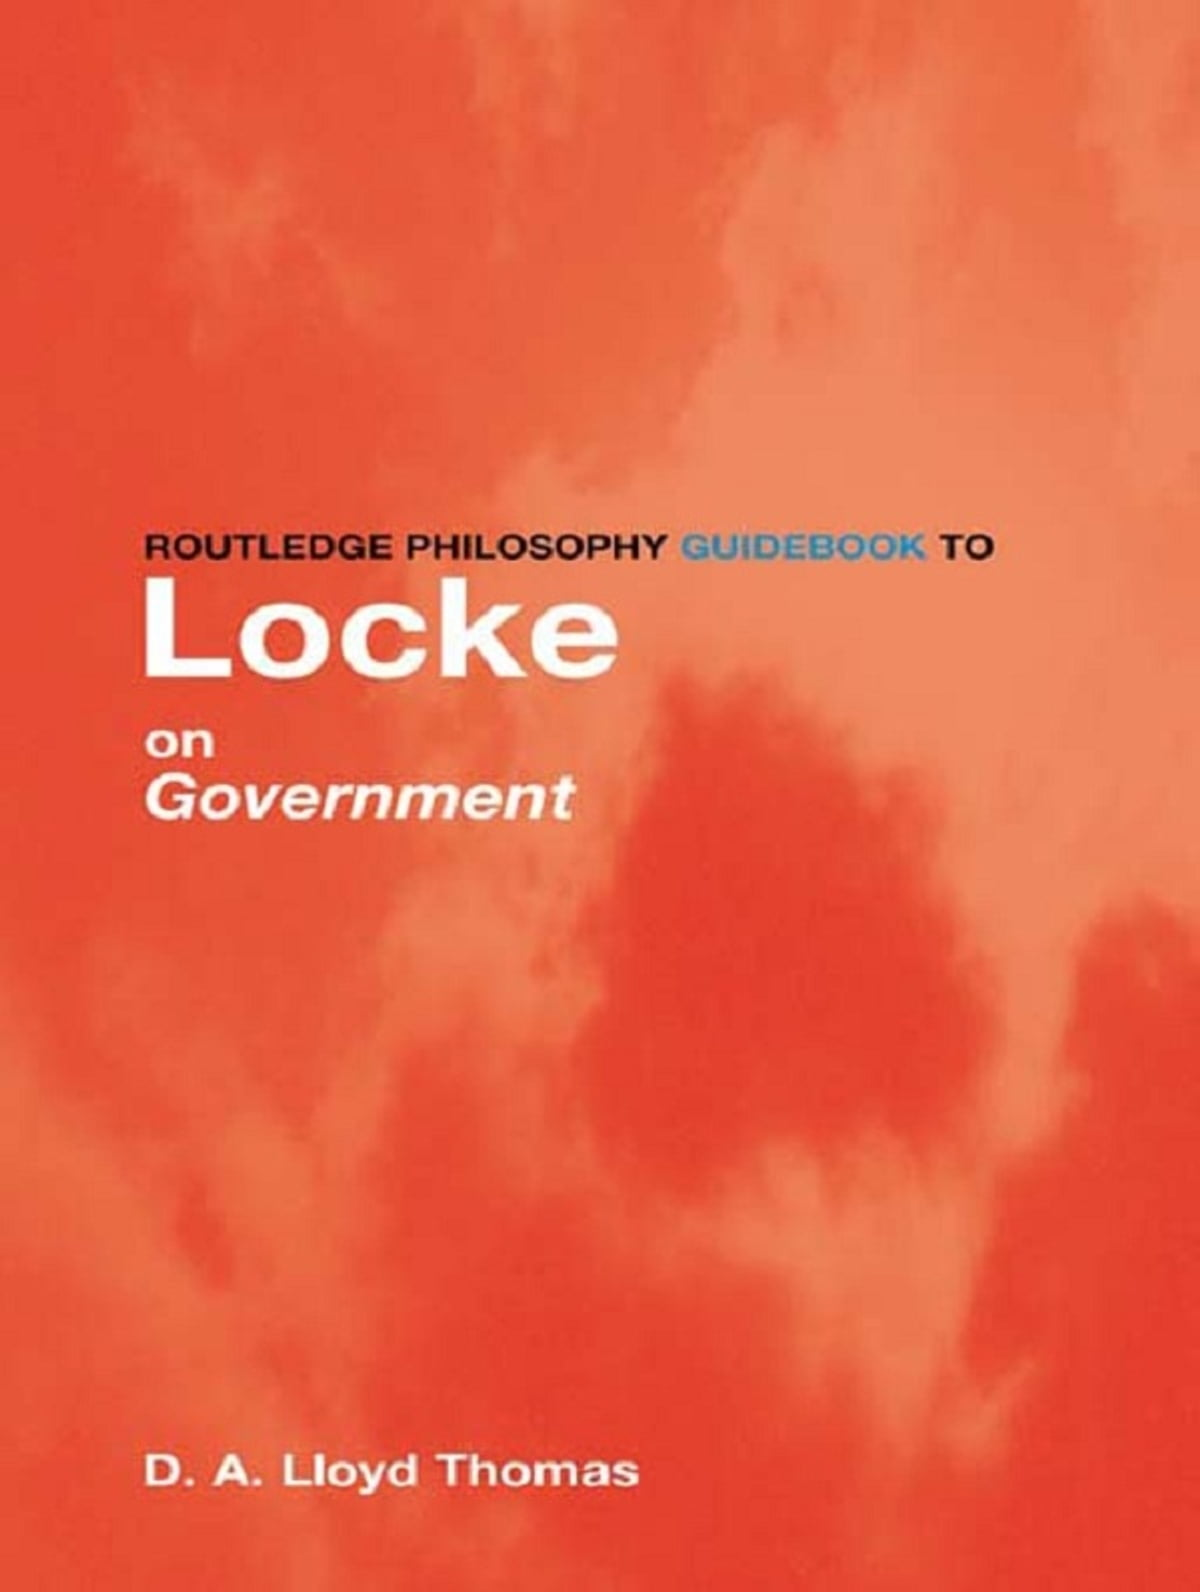 routledge philosophy guidebook to locke on government thomas david lloyd